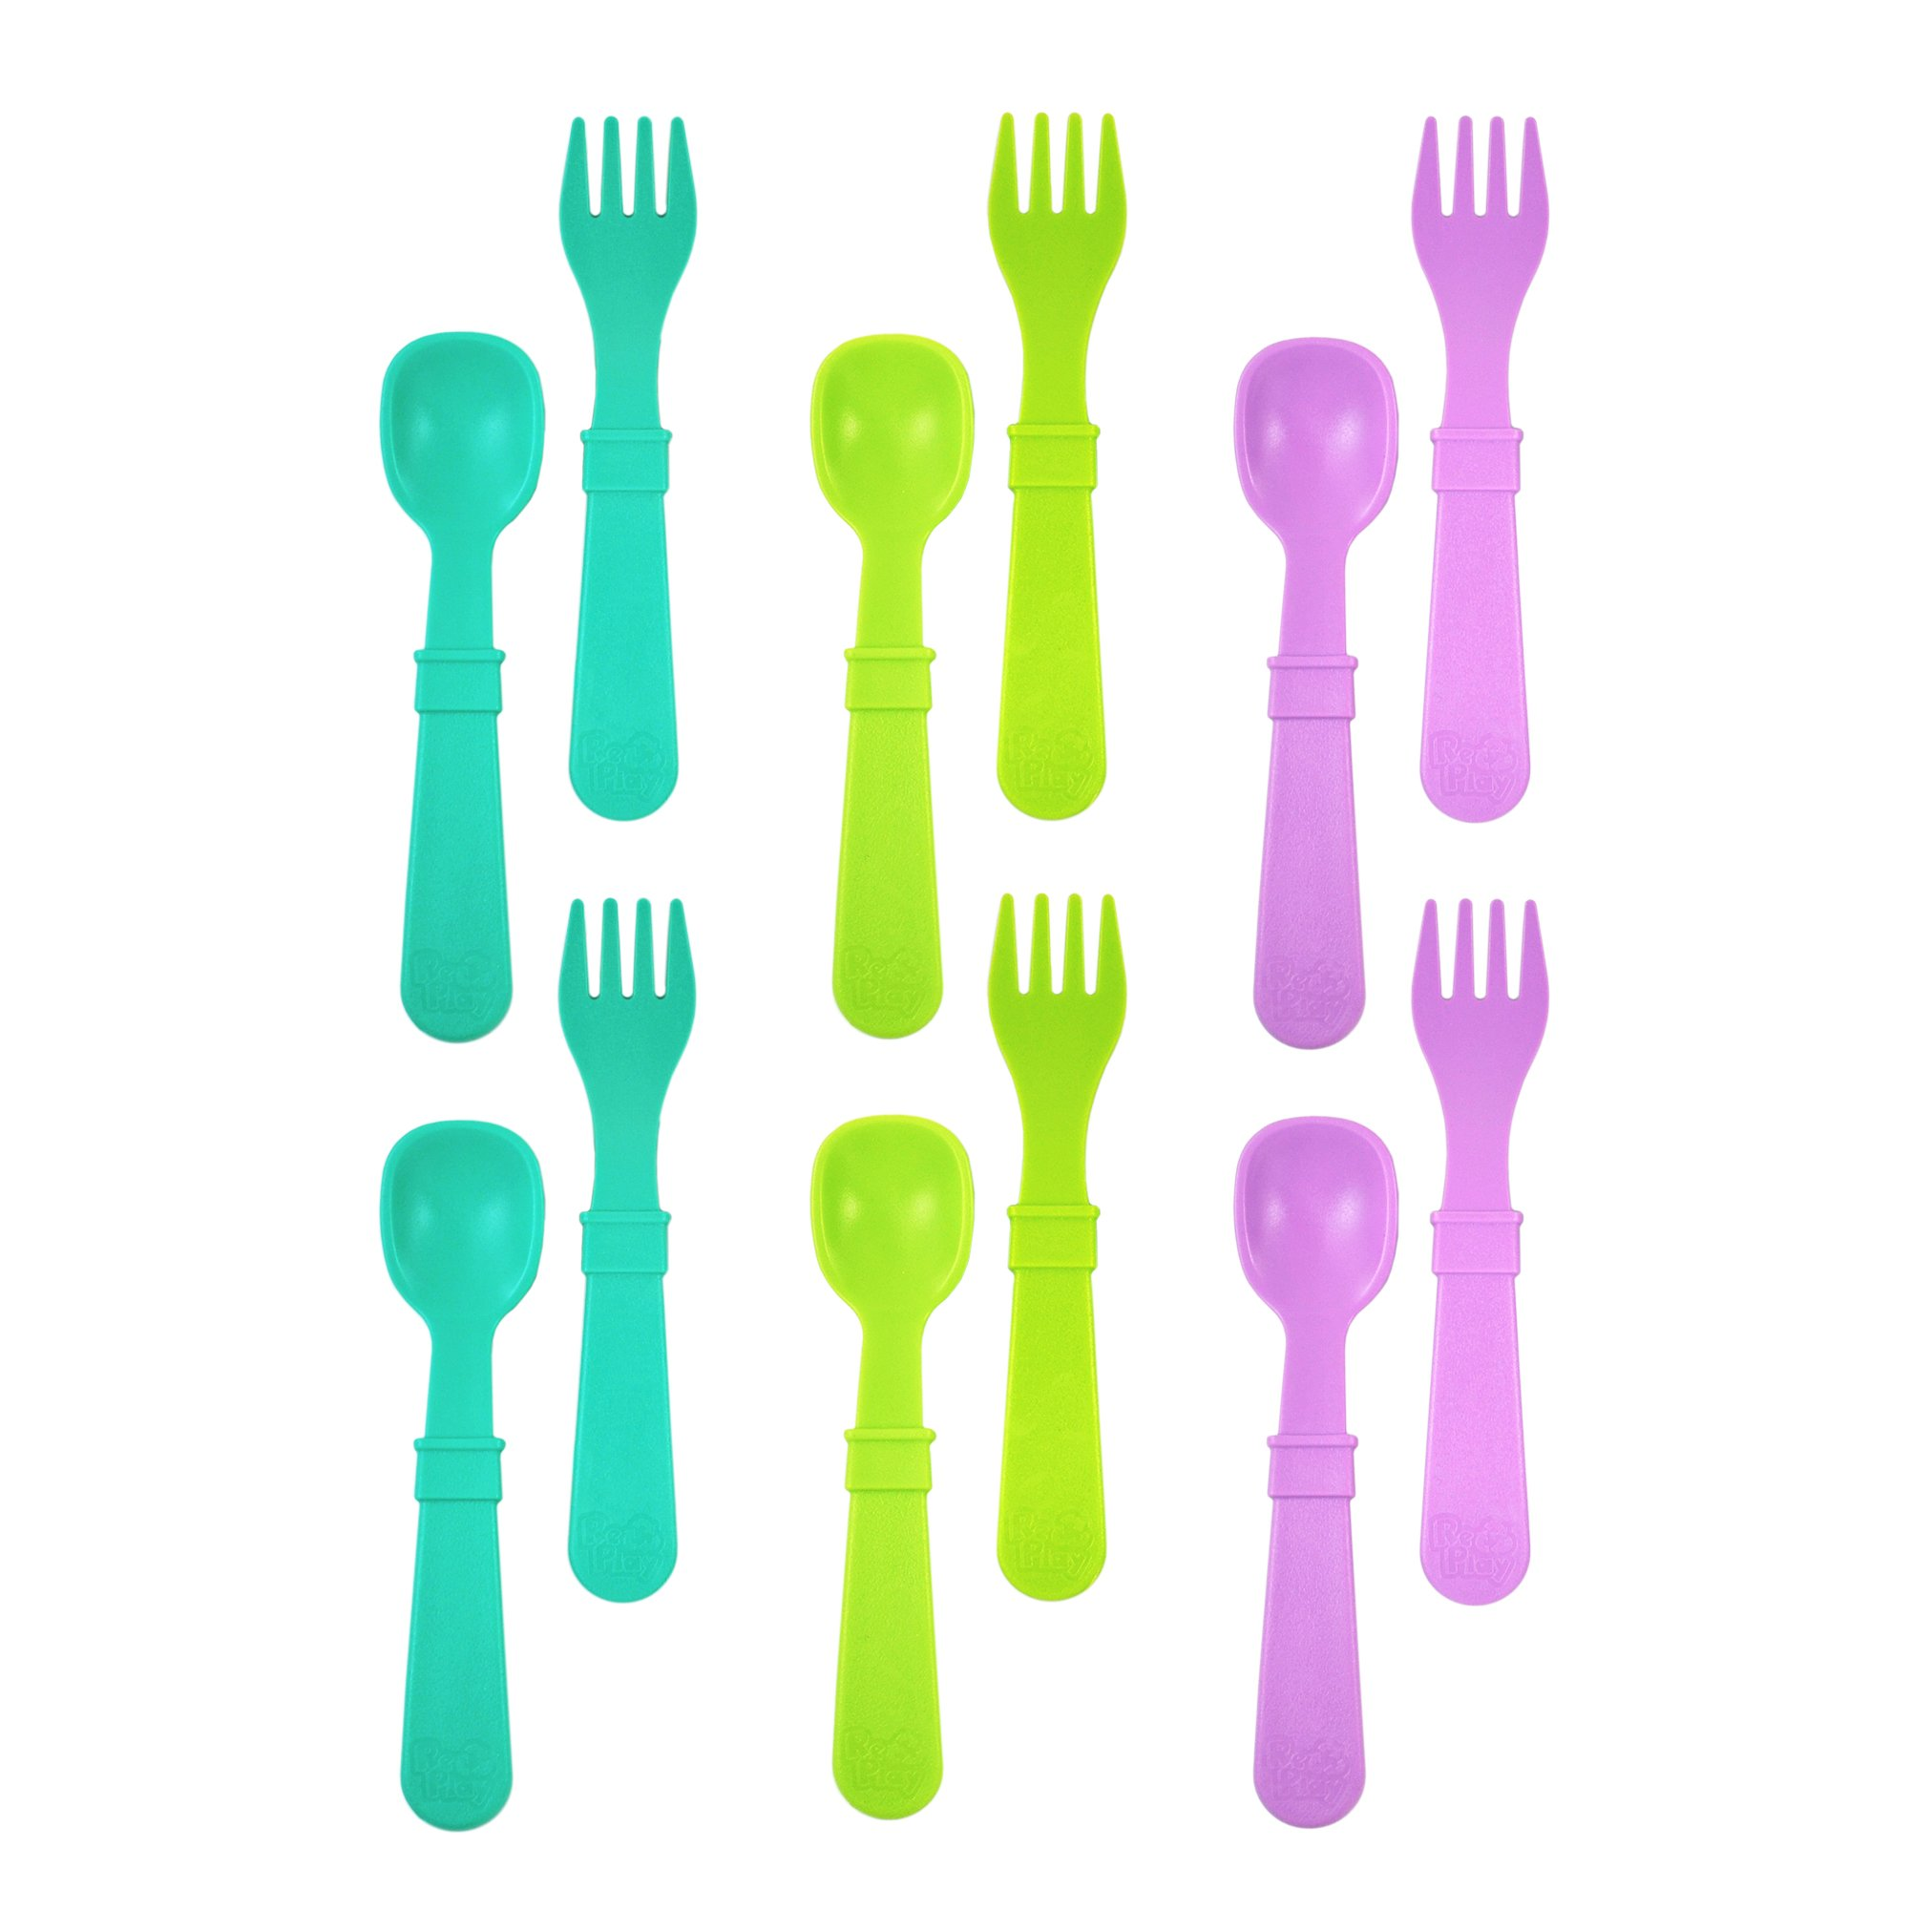 RE-PLAY Made in The USA 12pk Fork and Spoon Utensil Set for Easy Baby, Toddler, and Child Feeding in Aqua, Lime Green and Purple | Made from Eco Friendly Heavyweight Recycled Milk Jugs | (Mermaid)